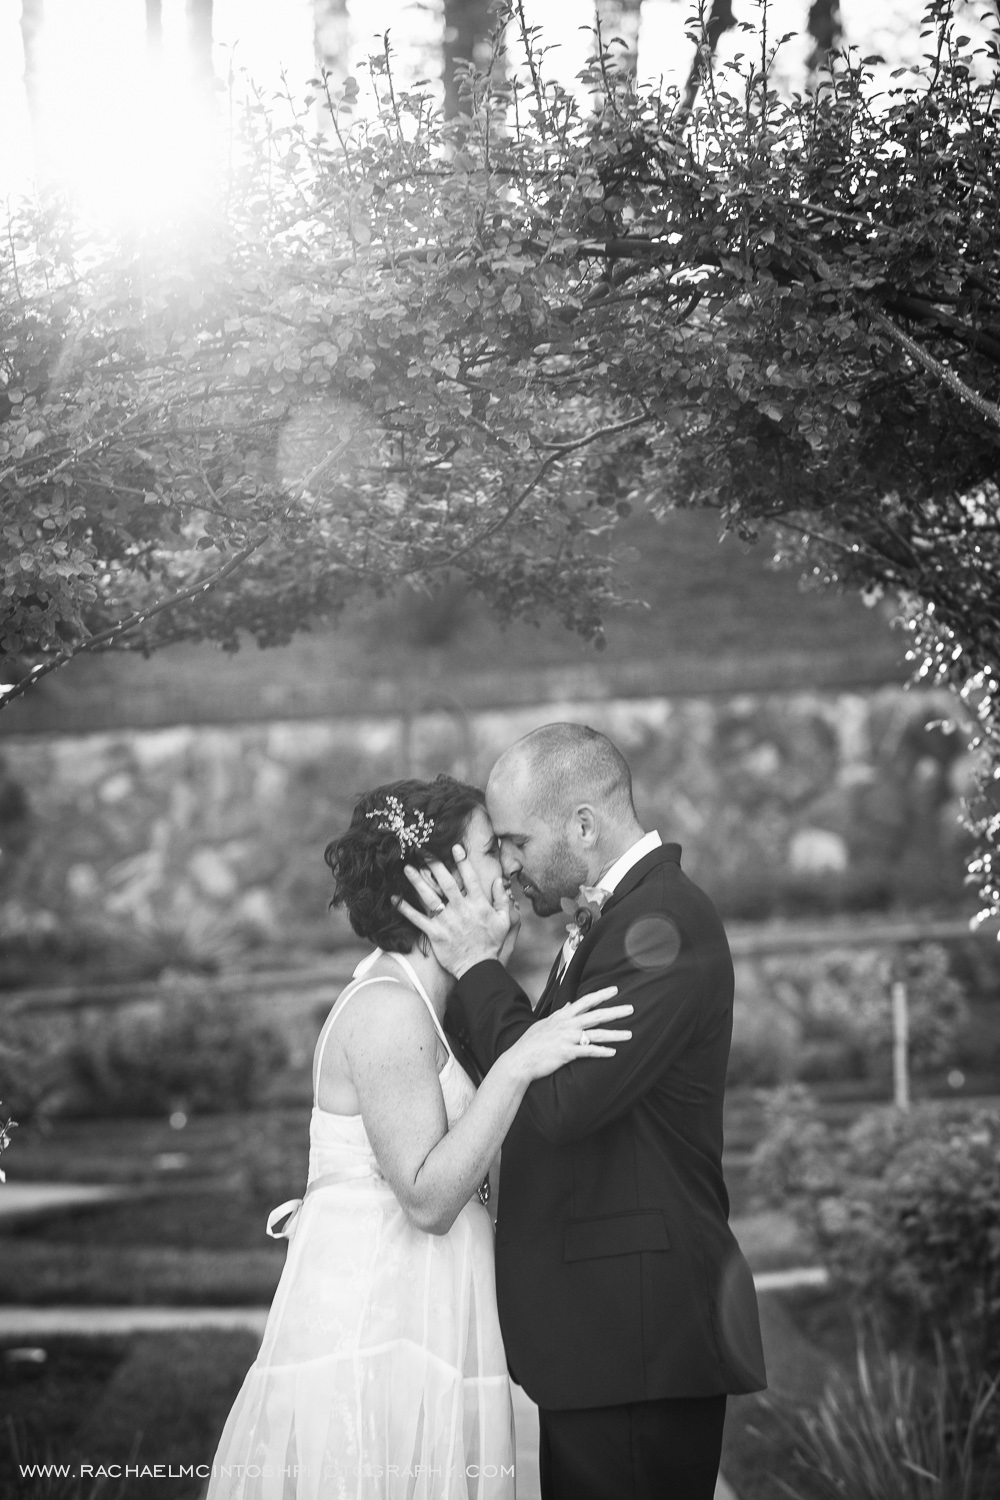 Asheville Wedding Photographer -2014 in review-21.jpg